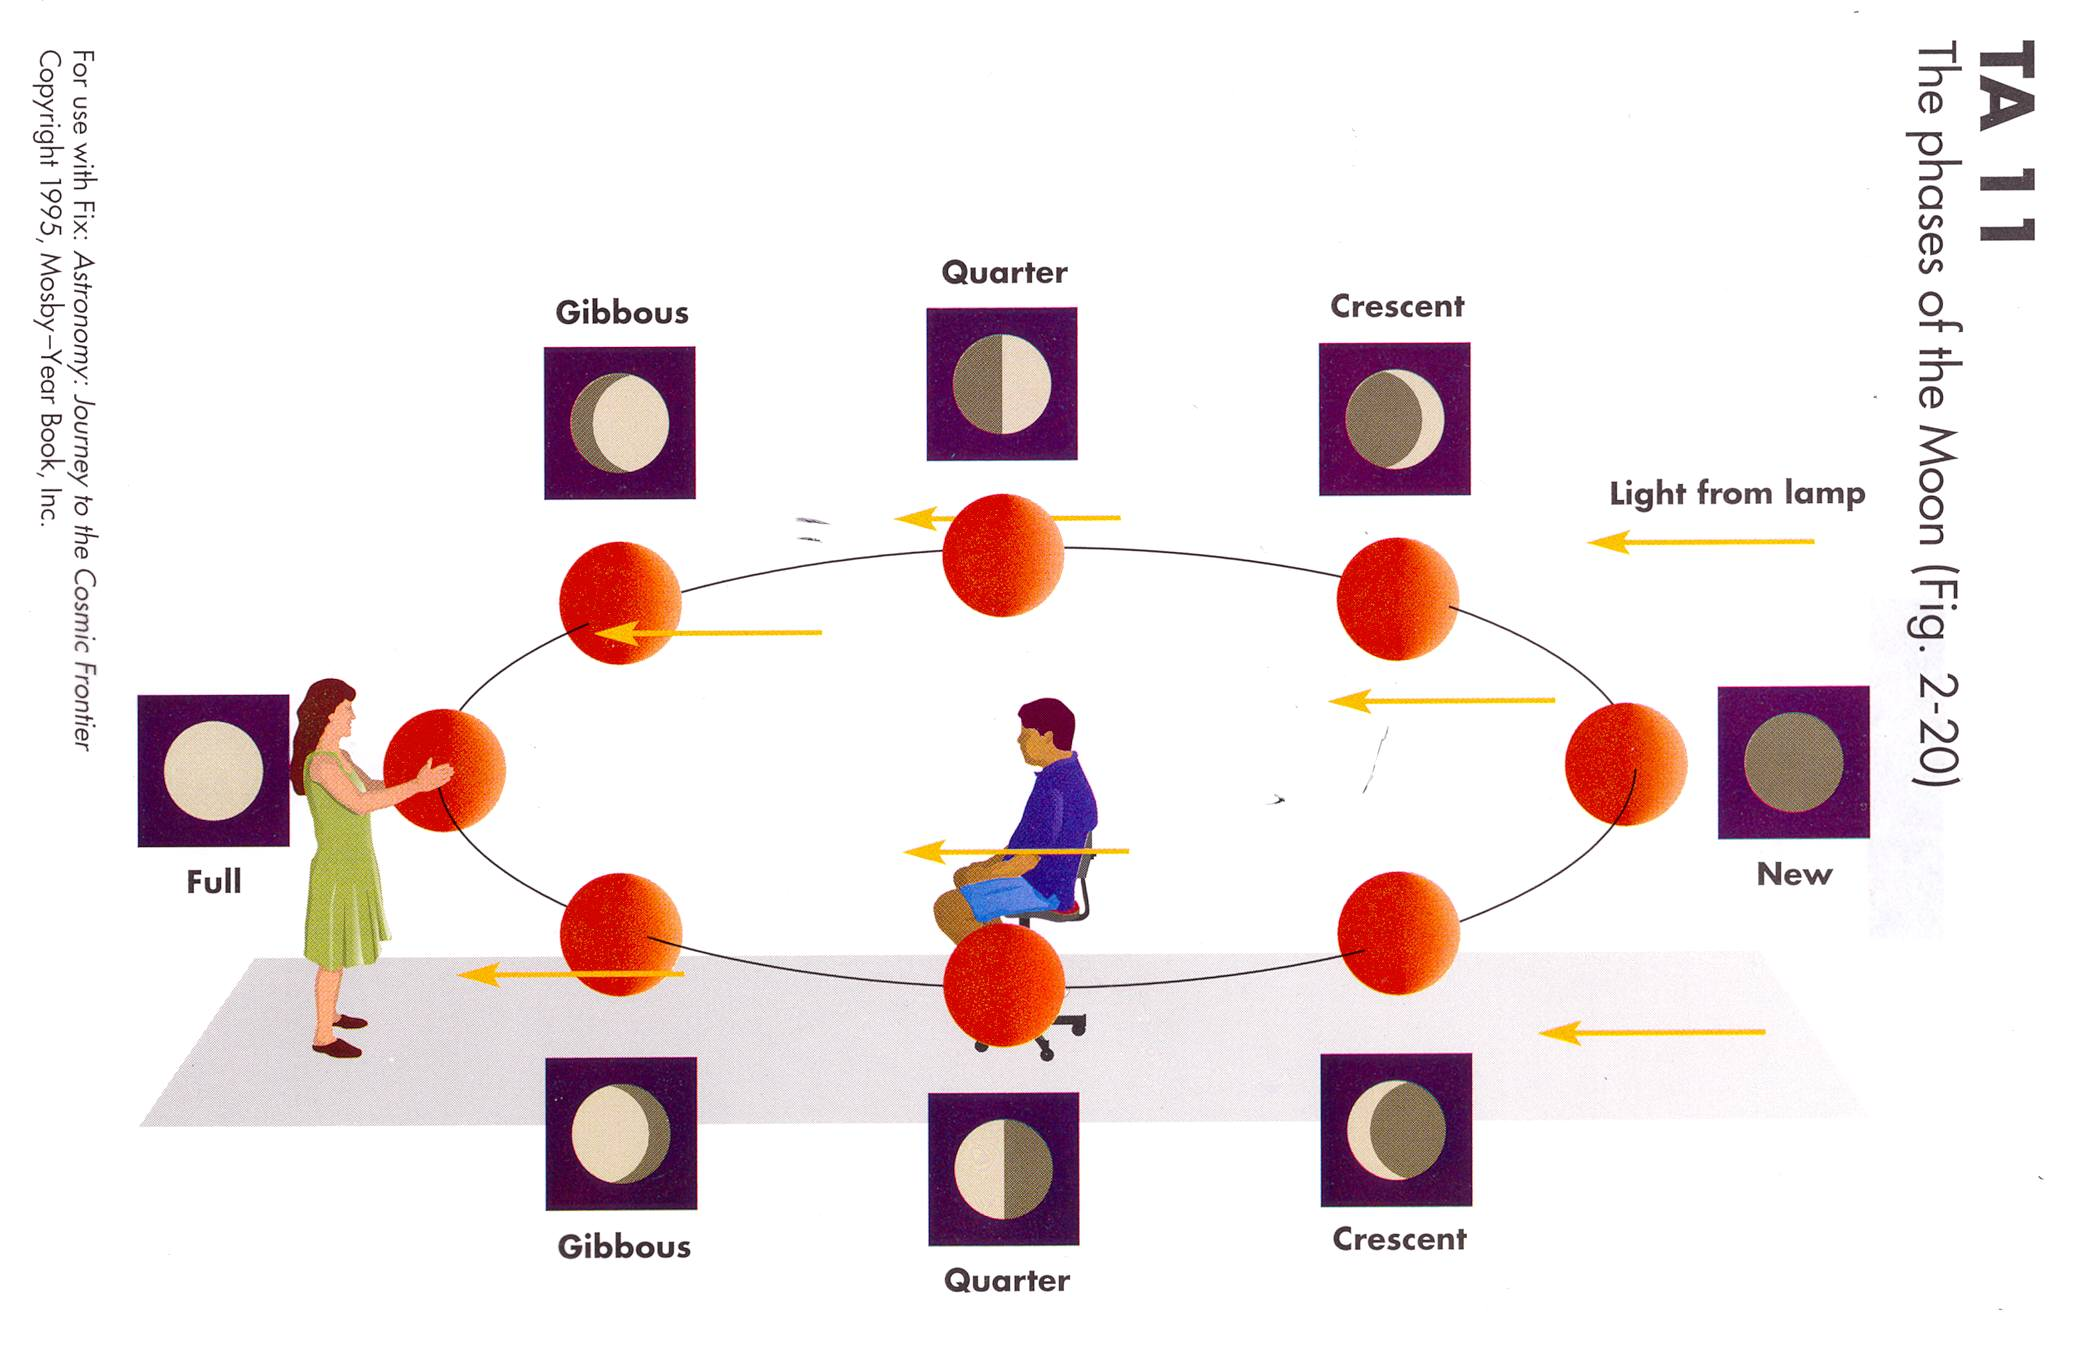 phases of the moon diagram to label polaris trailblazer 250 carb oklahoma space stuff